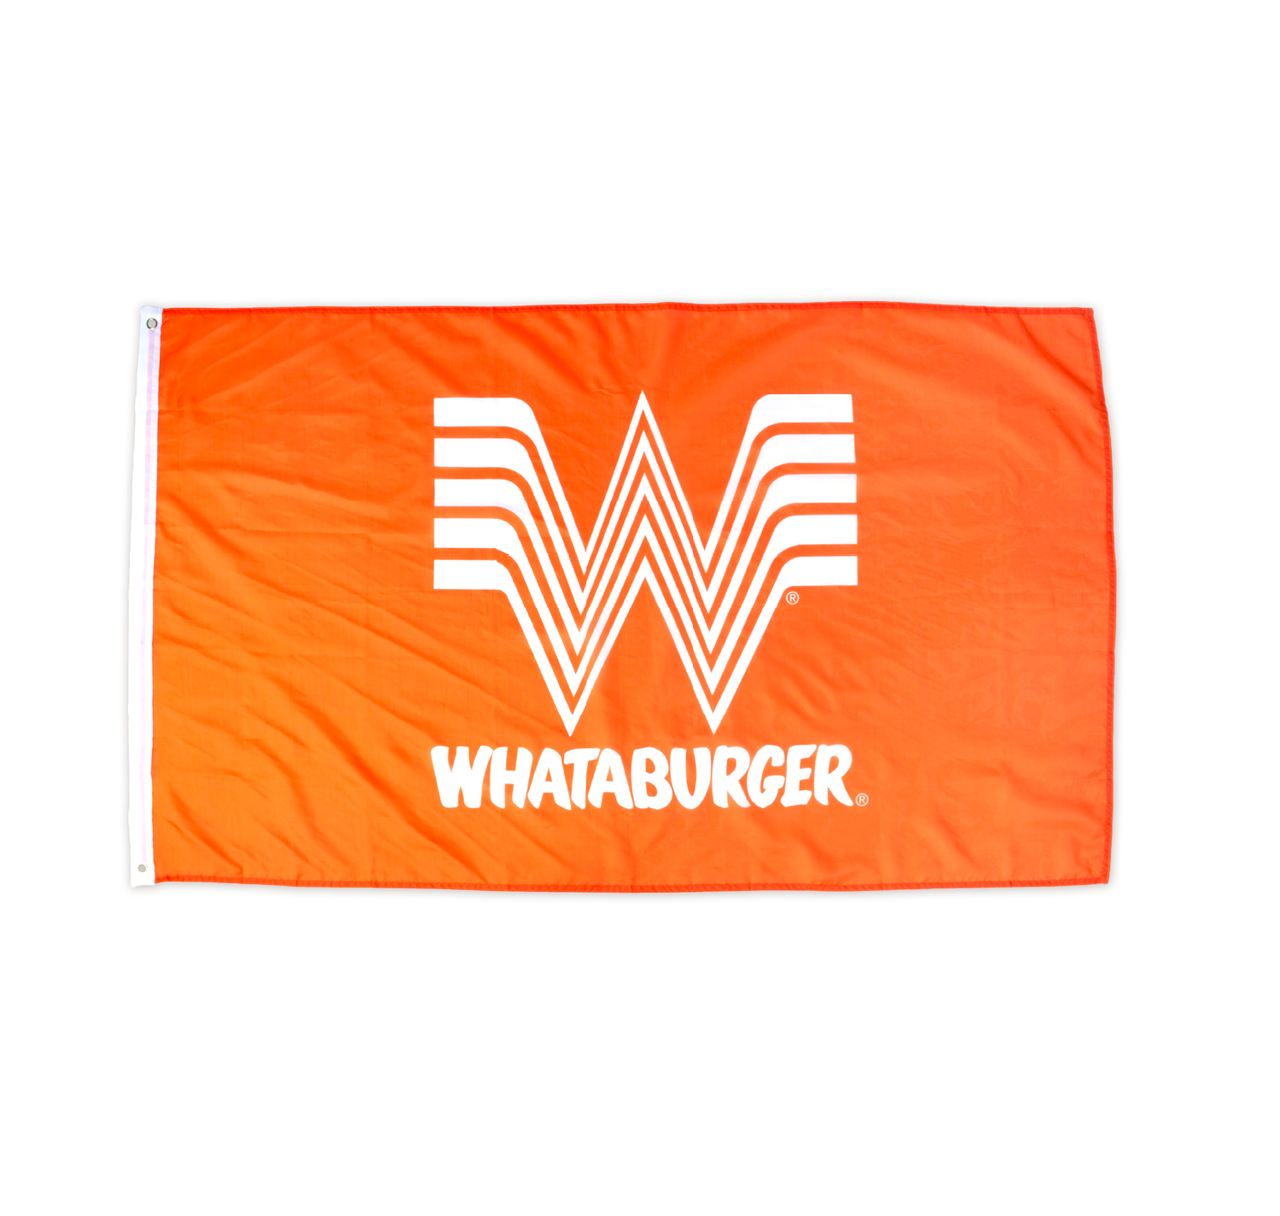 Orange Whataburger Flag.